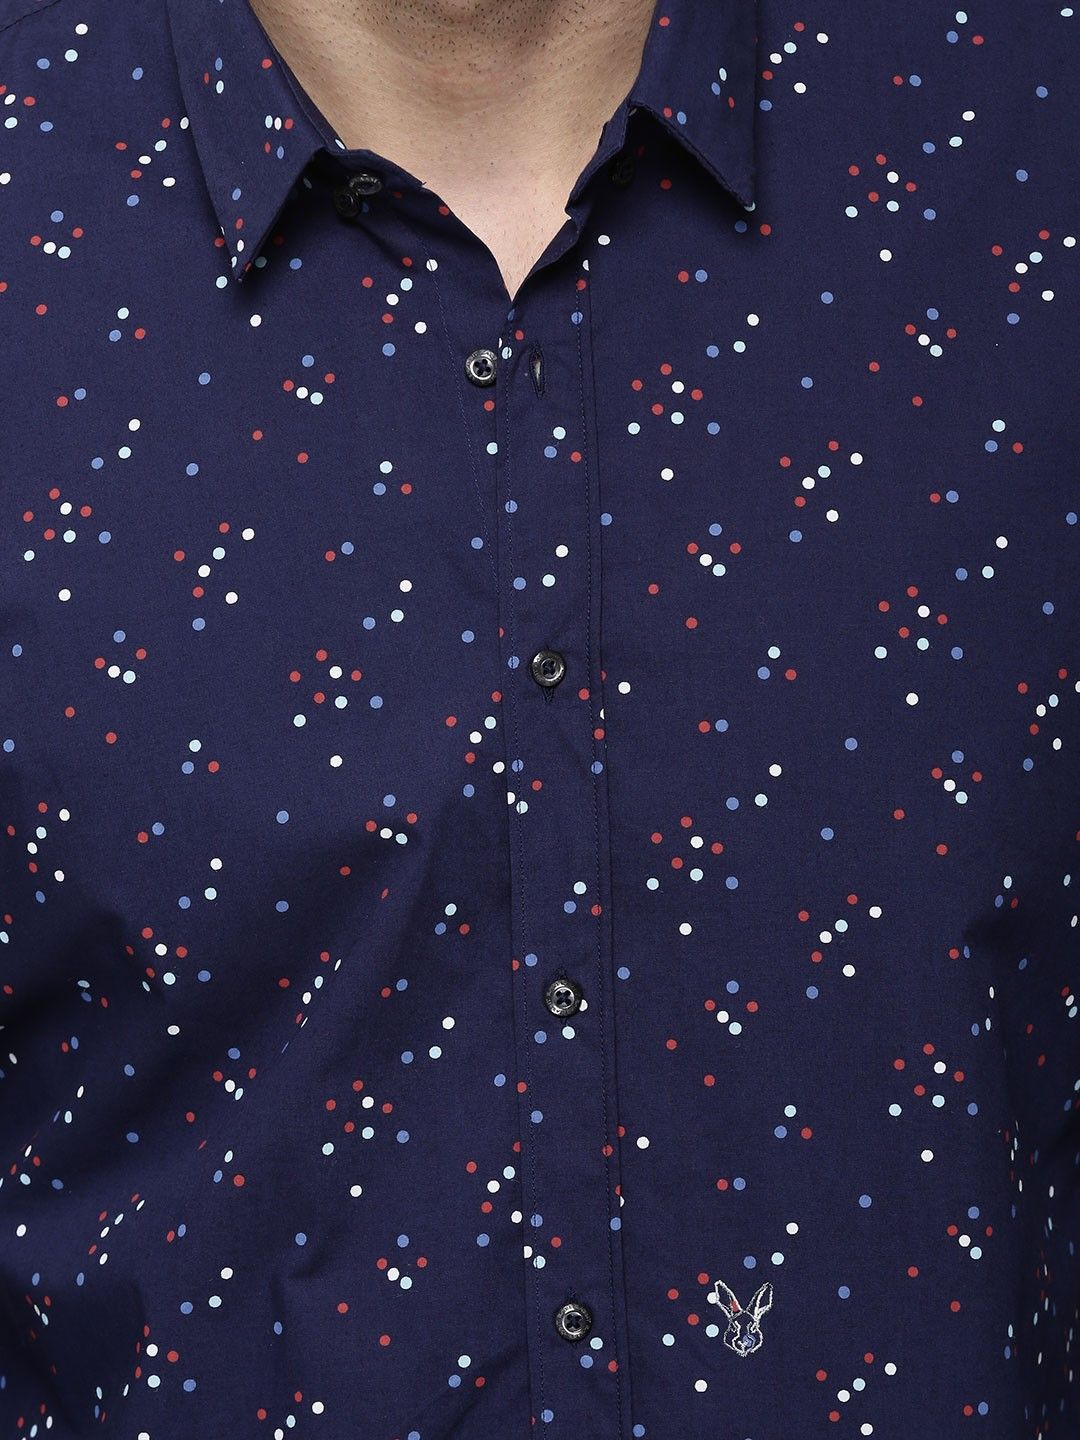 RARE RABBIT | Dot Print Casual Shirt - Buy Men's Casual Shirts ...